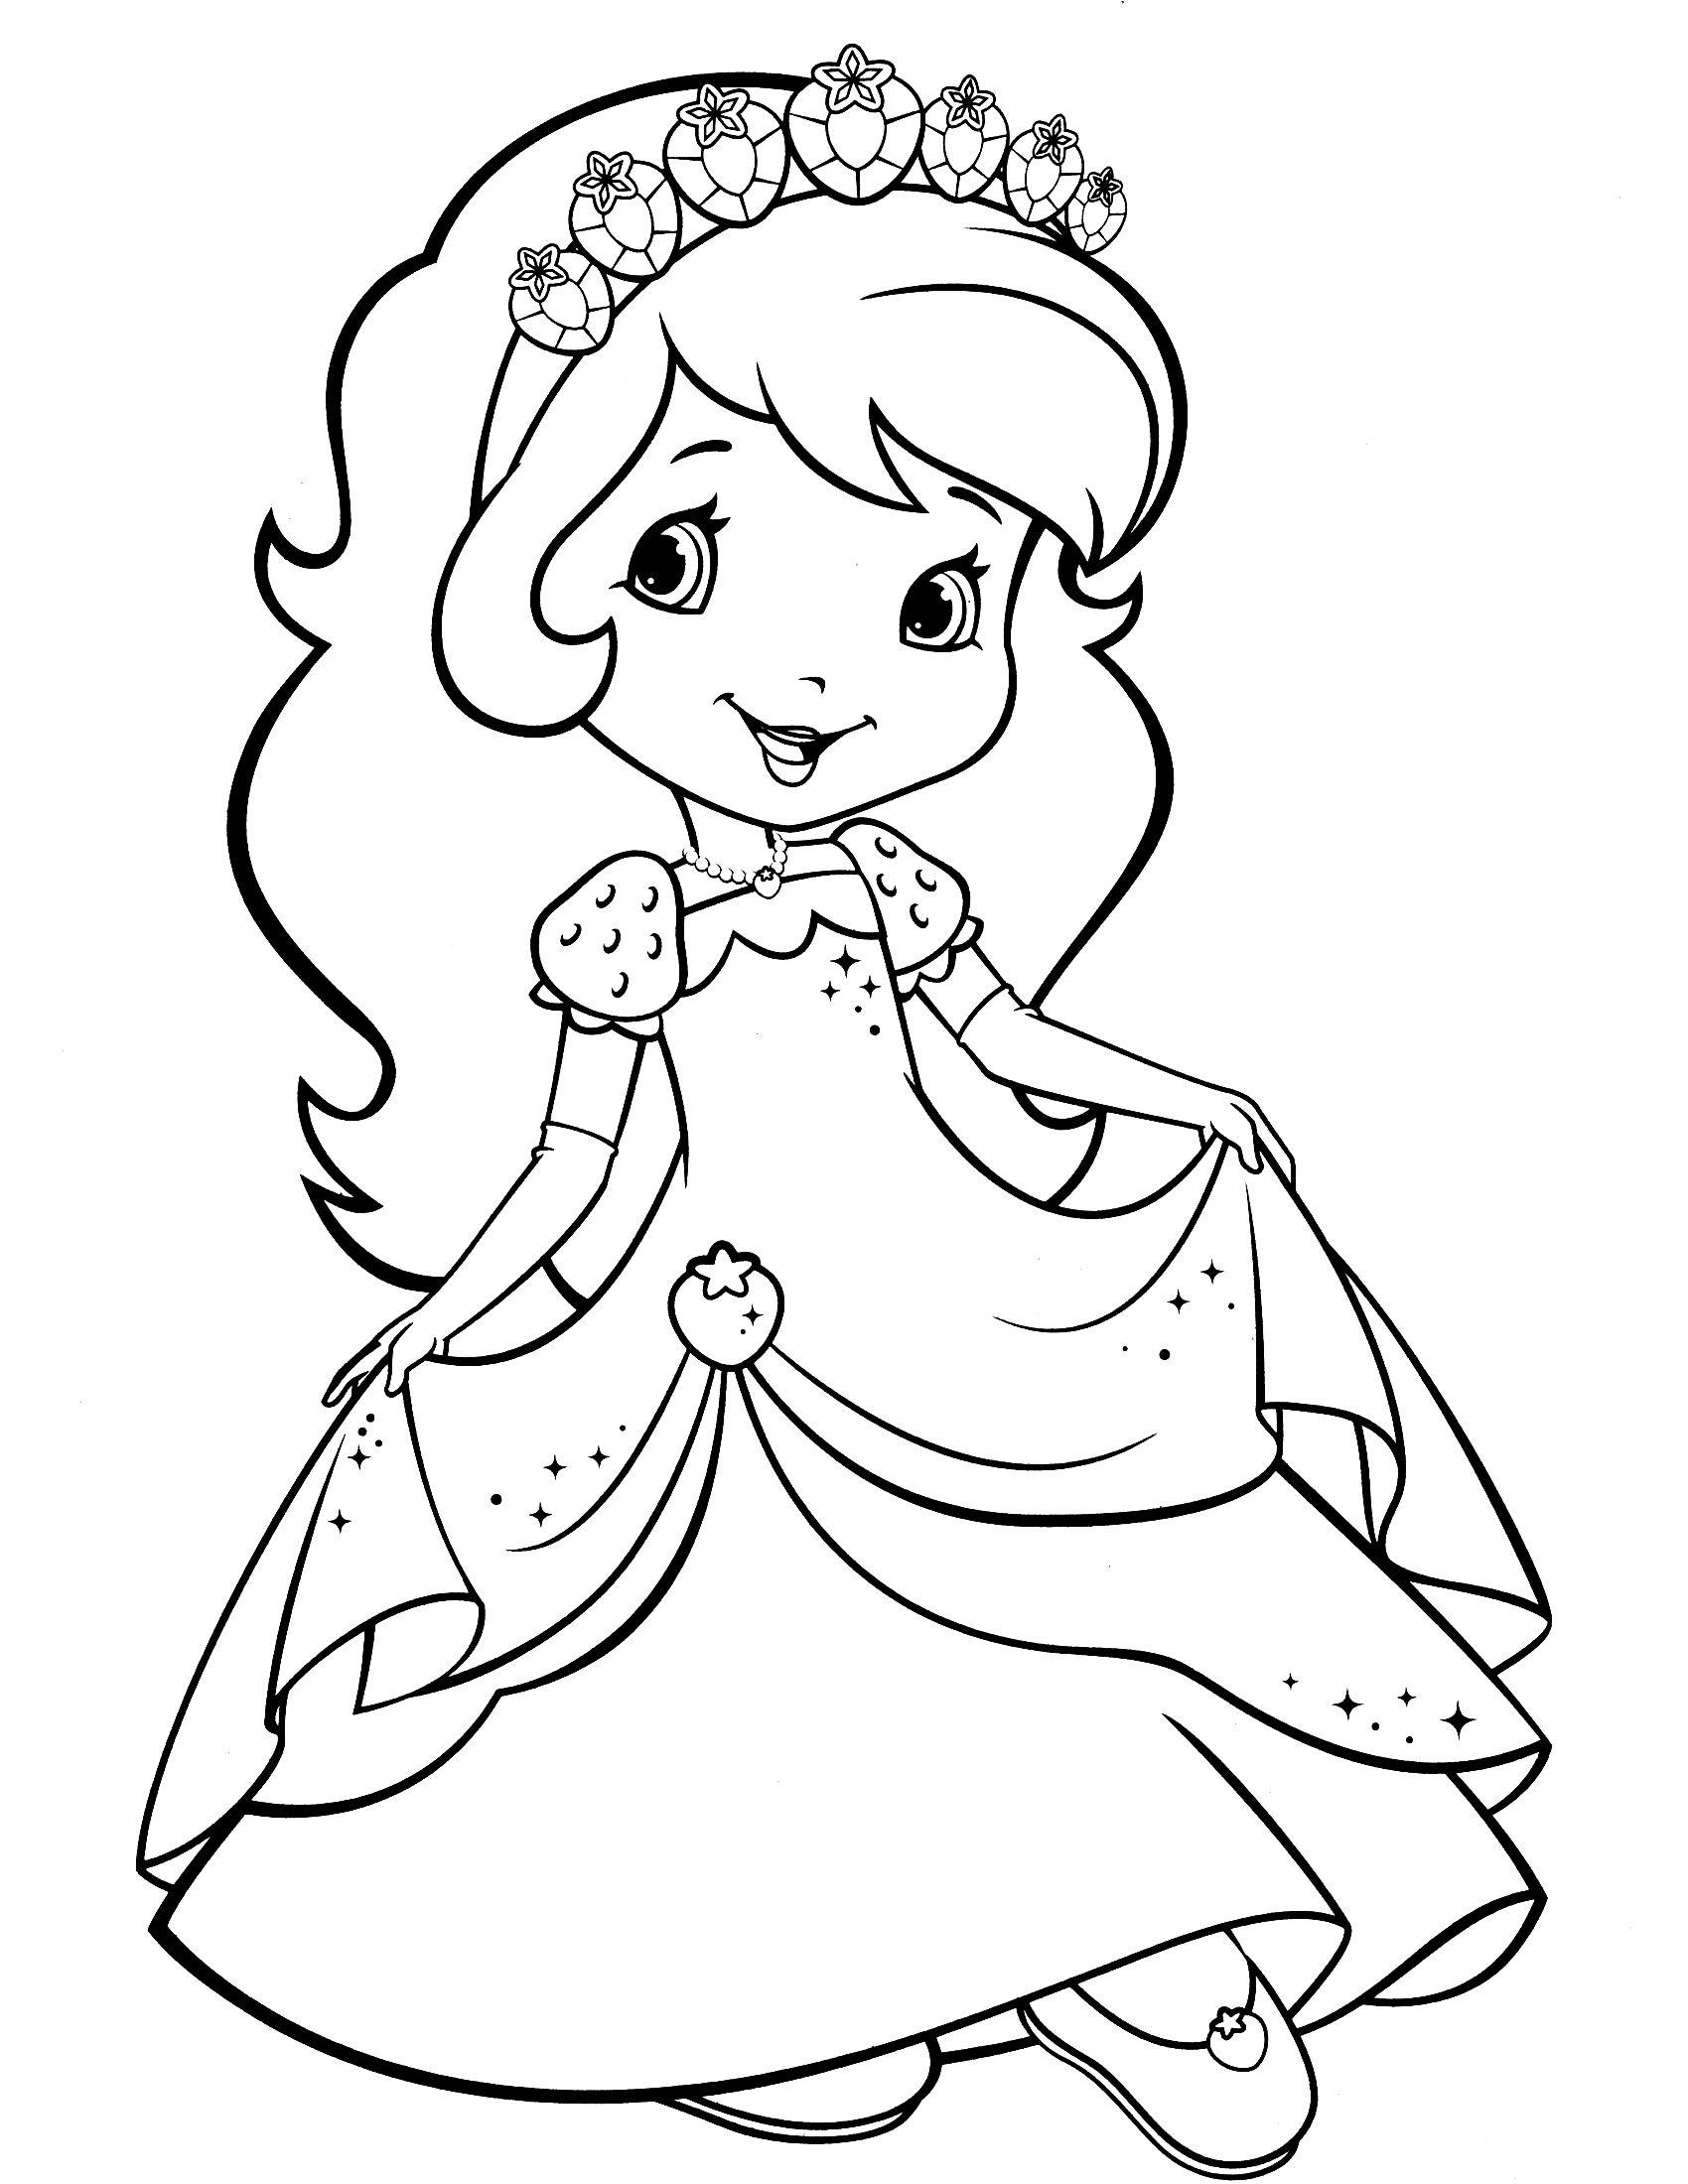 Strawberry Shortcake Coloring Page   Coloring   Strawberry